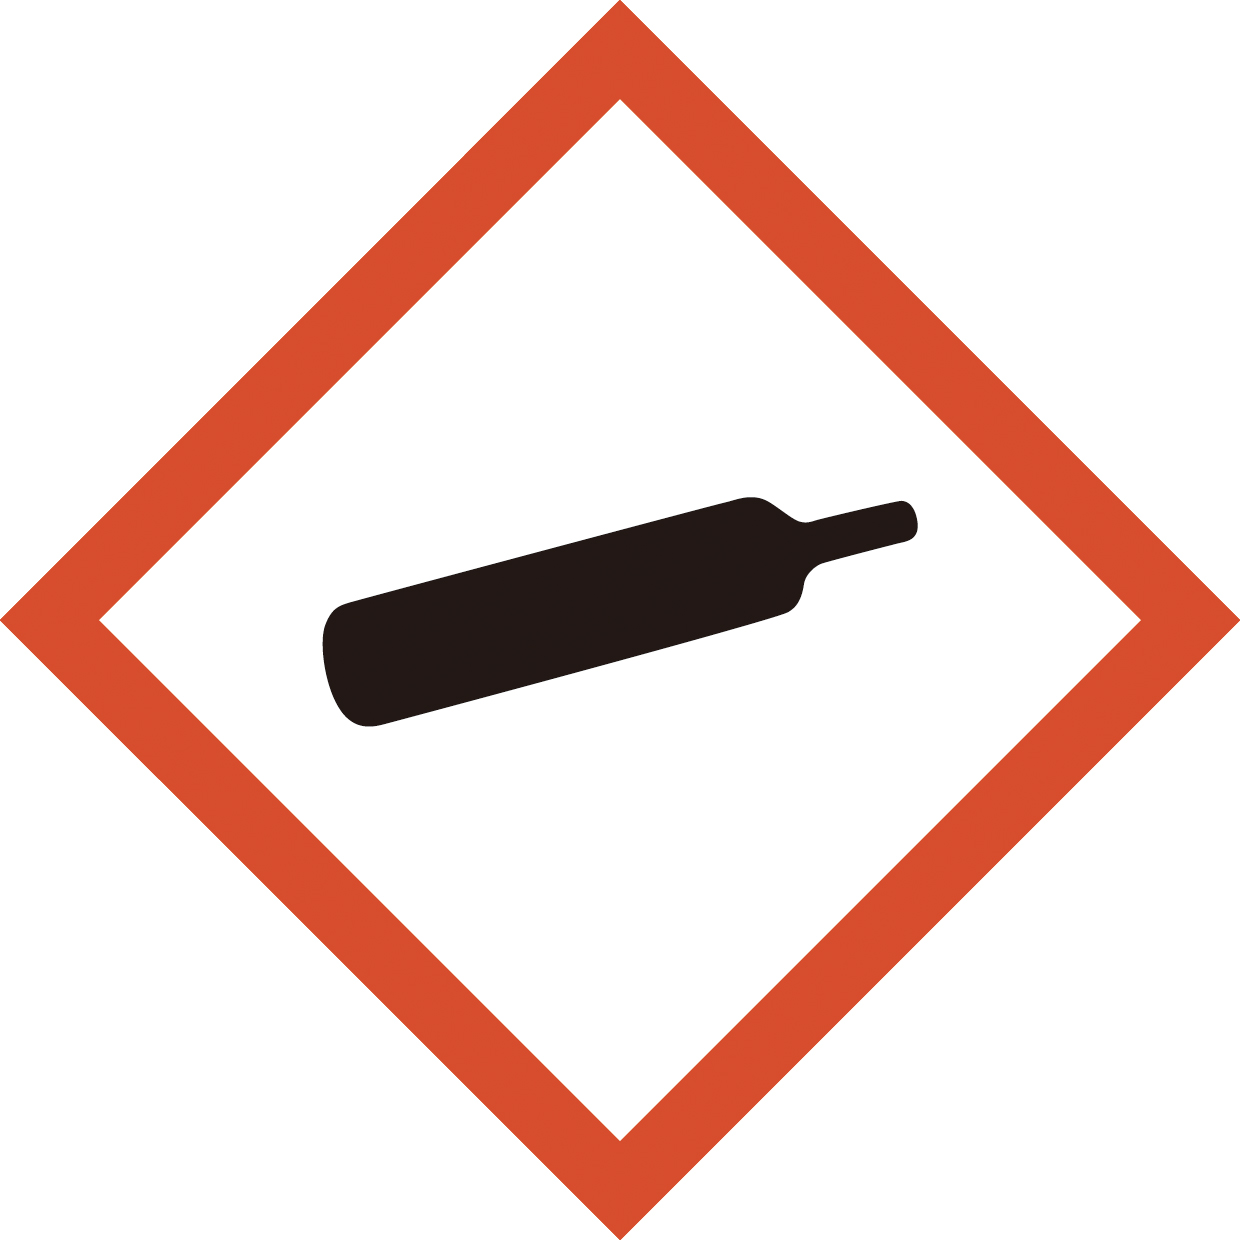 Hazard Symbol Occupational Safety Health And Environment Unit Oshe